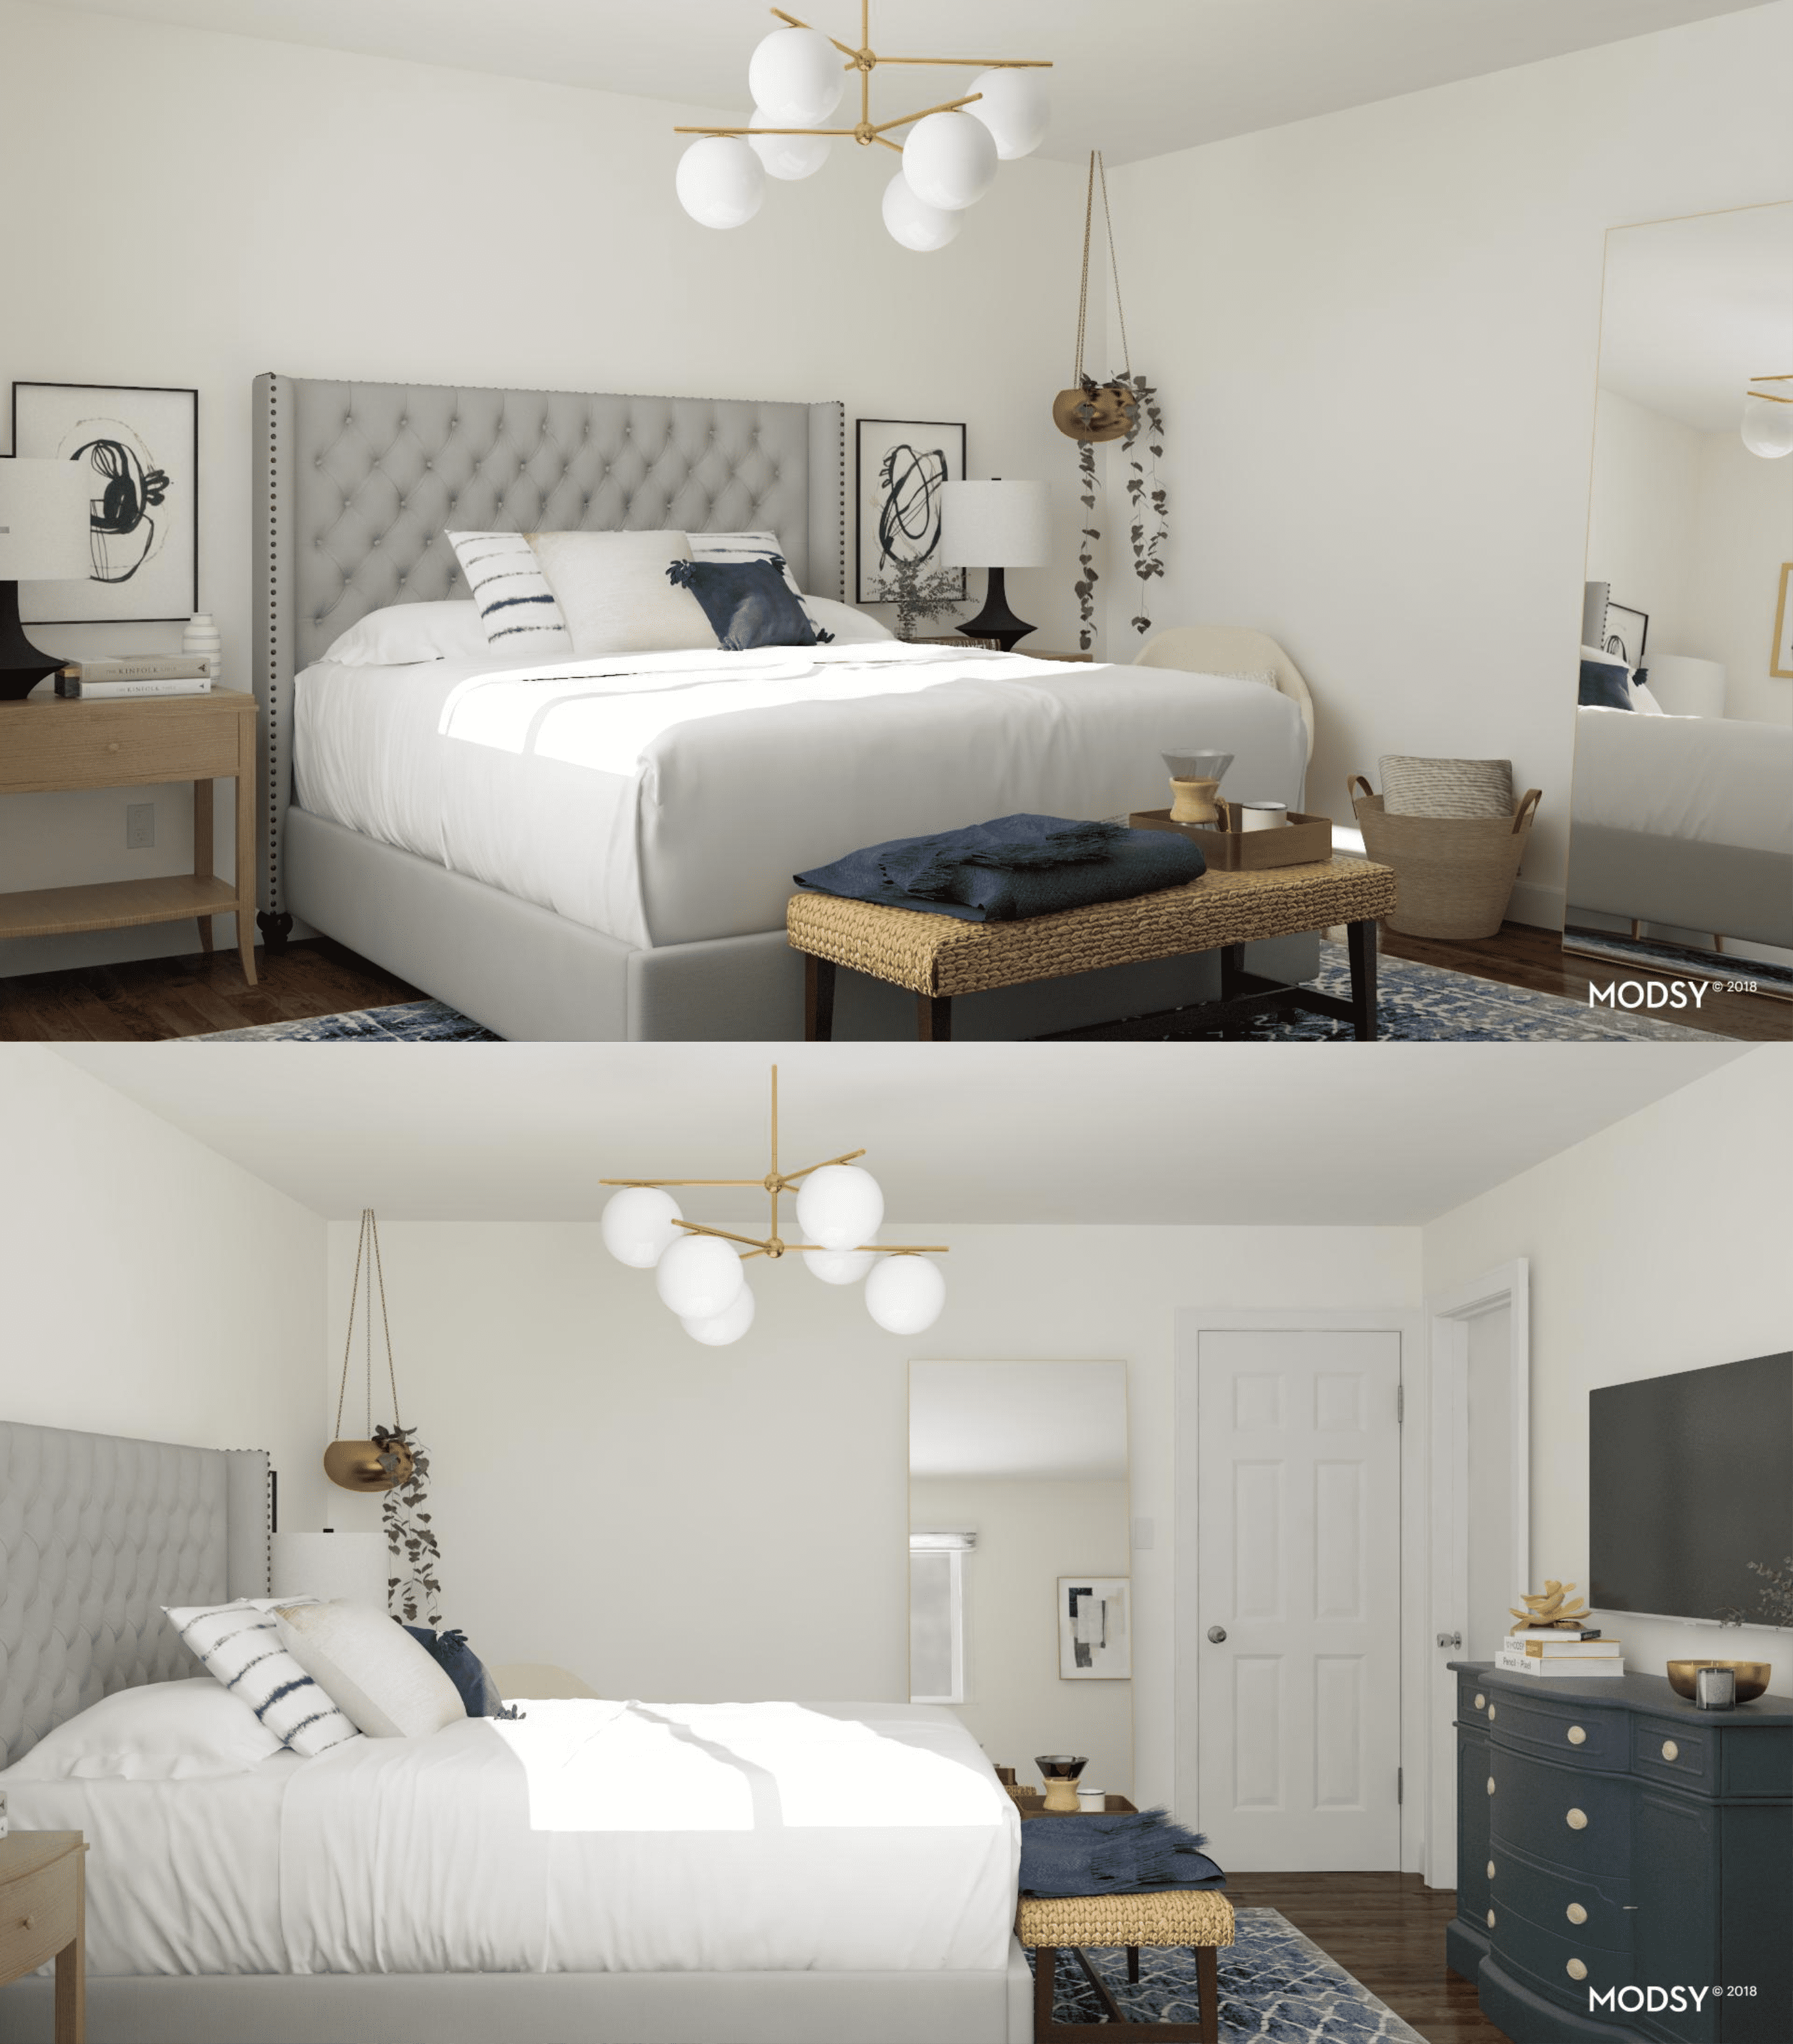 How To Get A Blissful Bedroom With Design Plans With This Easy To Use 3D  Visualization